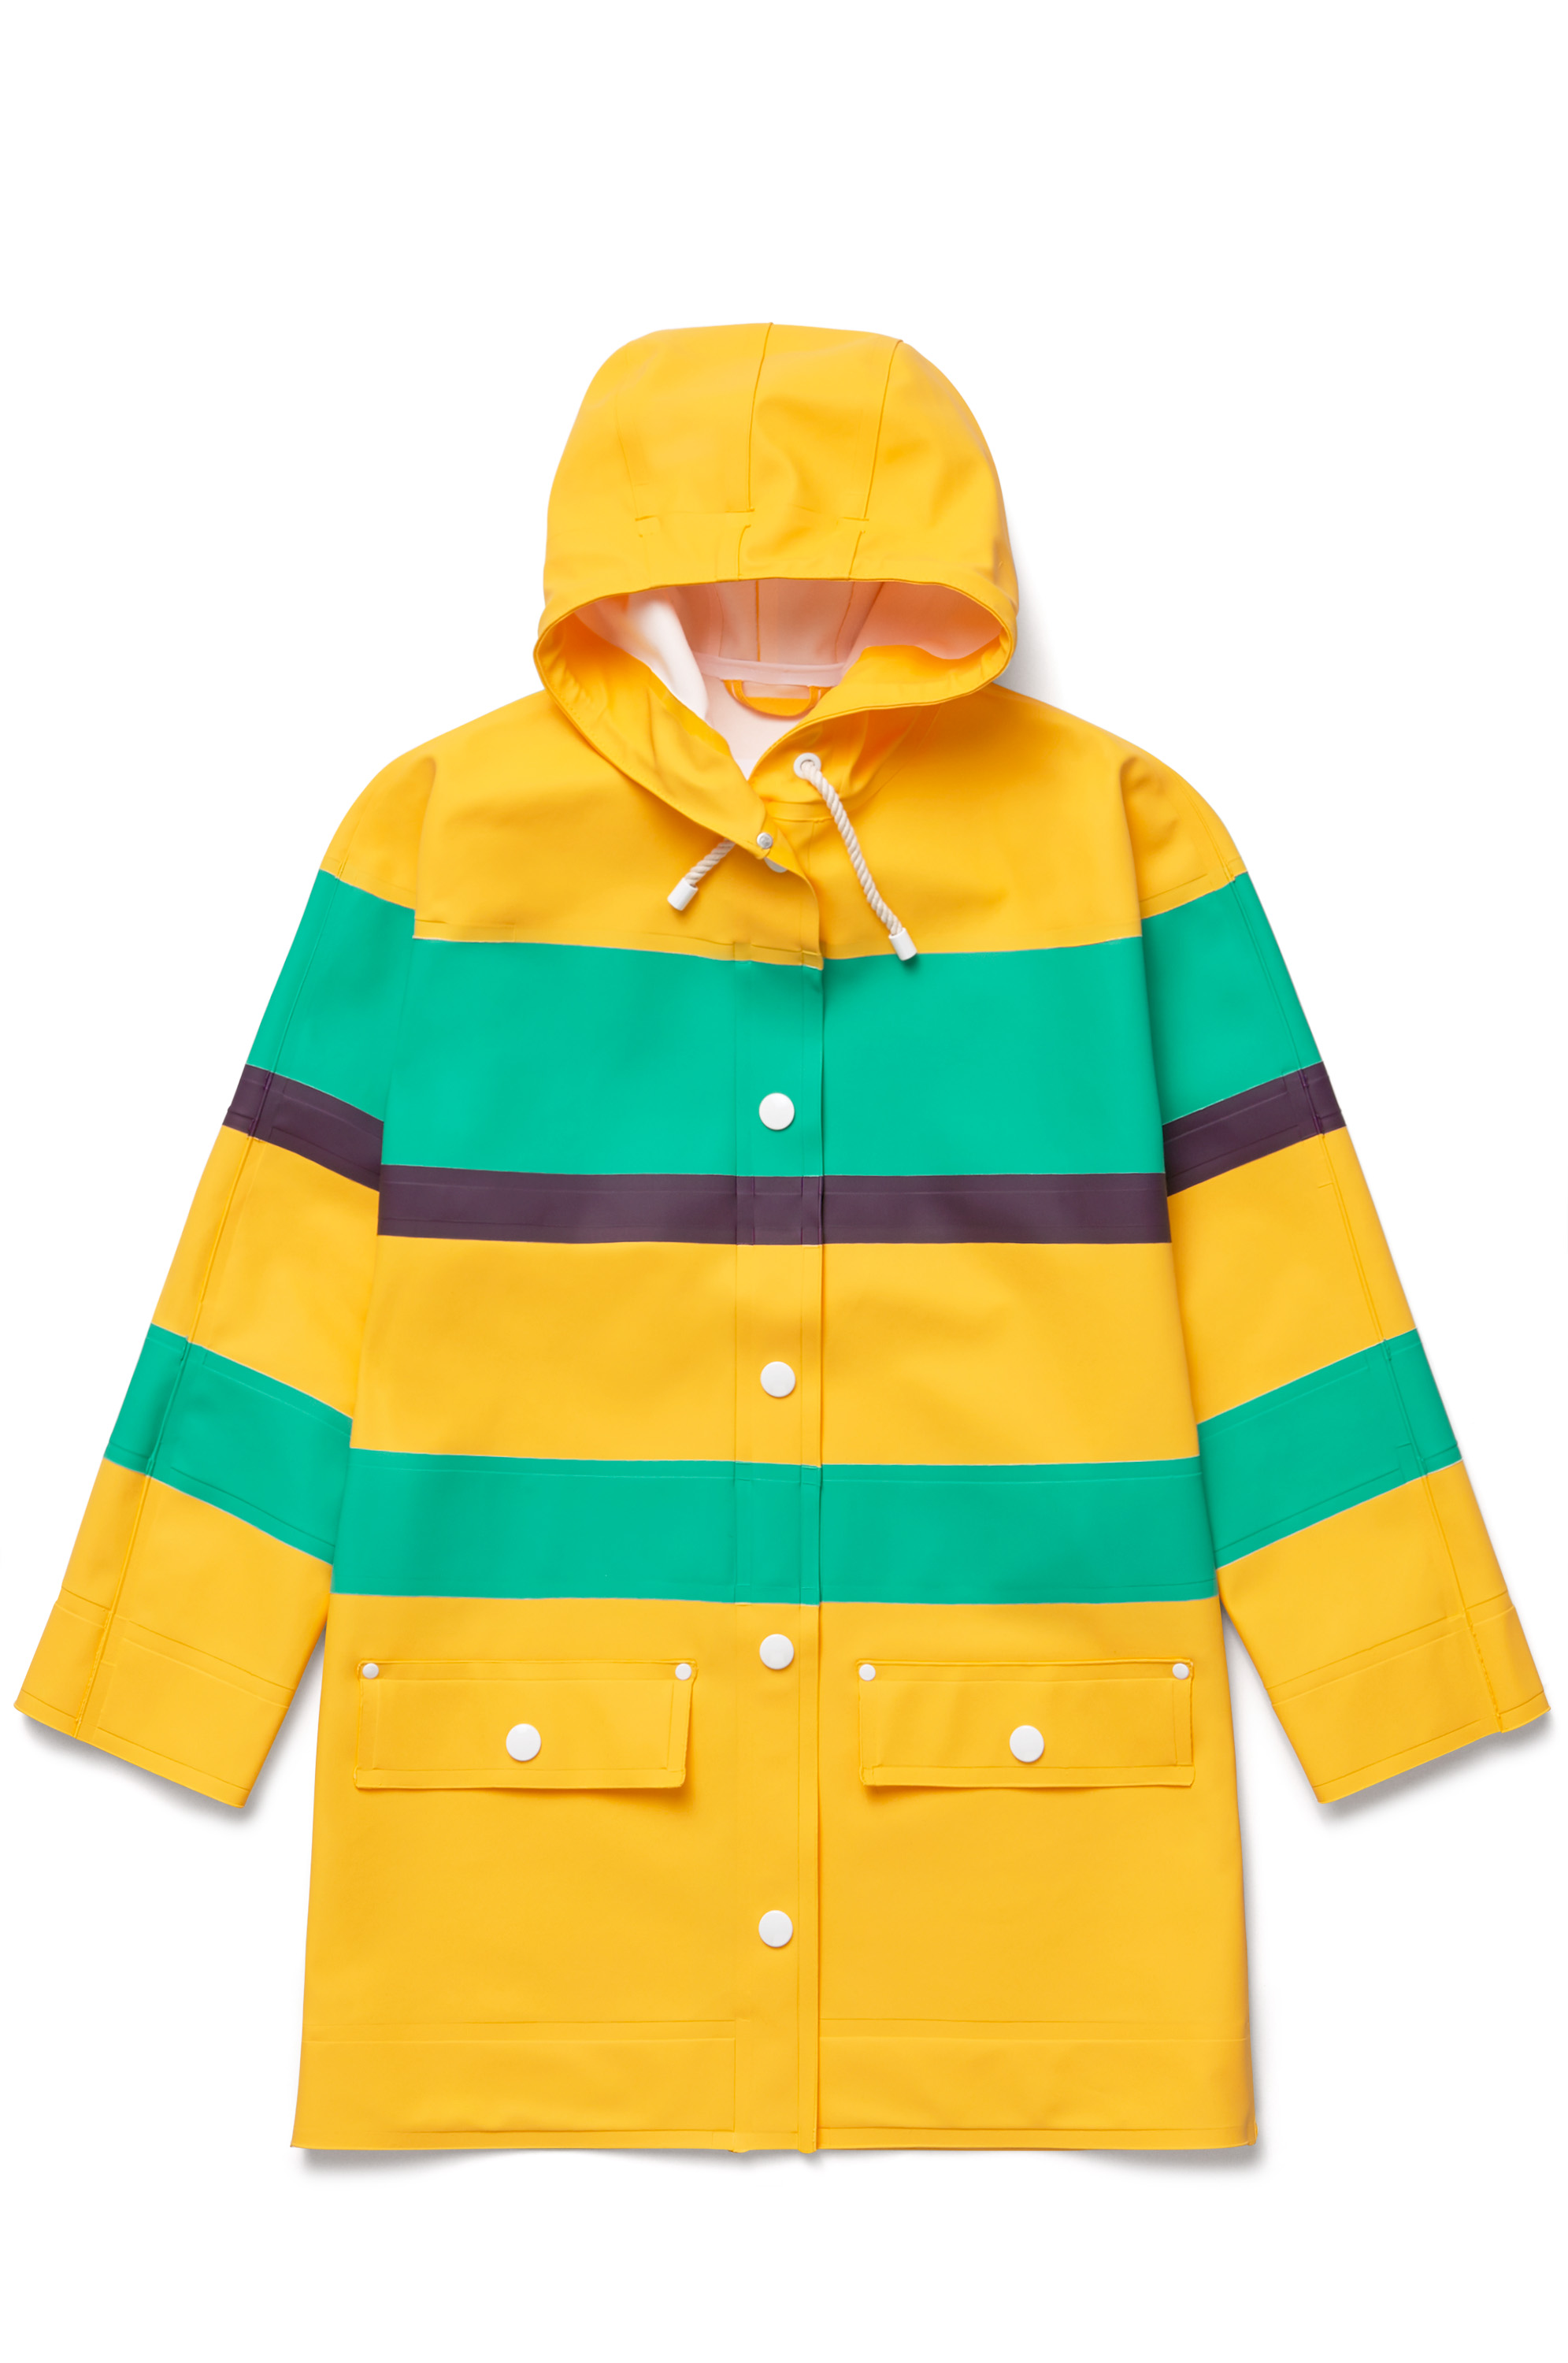 Stutterheim_Marni_SS18_Woman_DolmanCoat_YellowMulti_Product